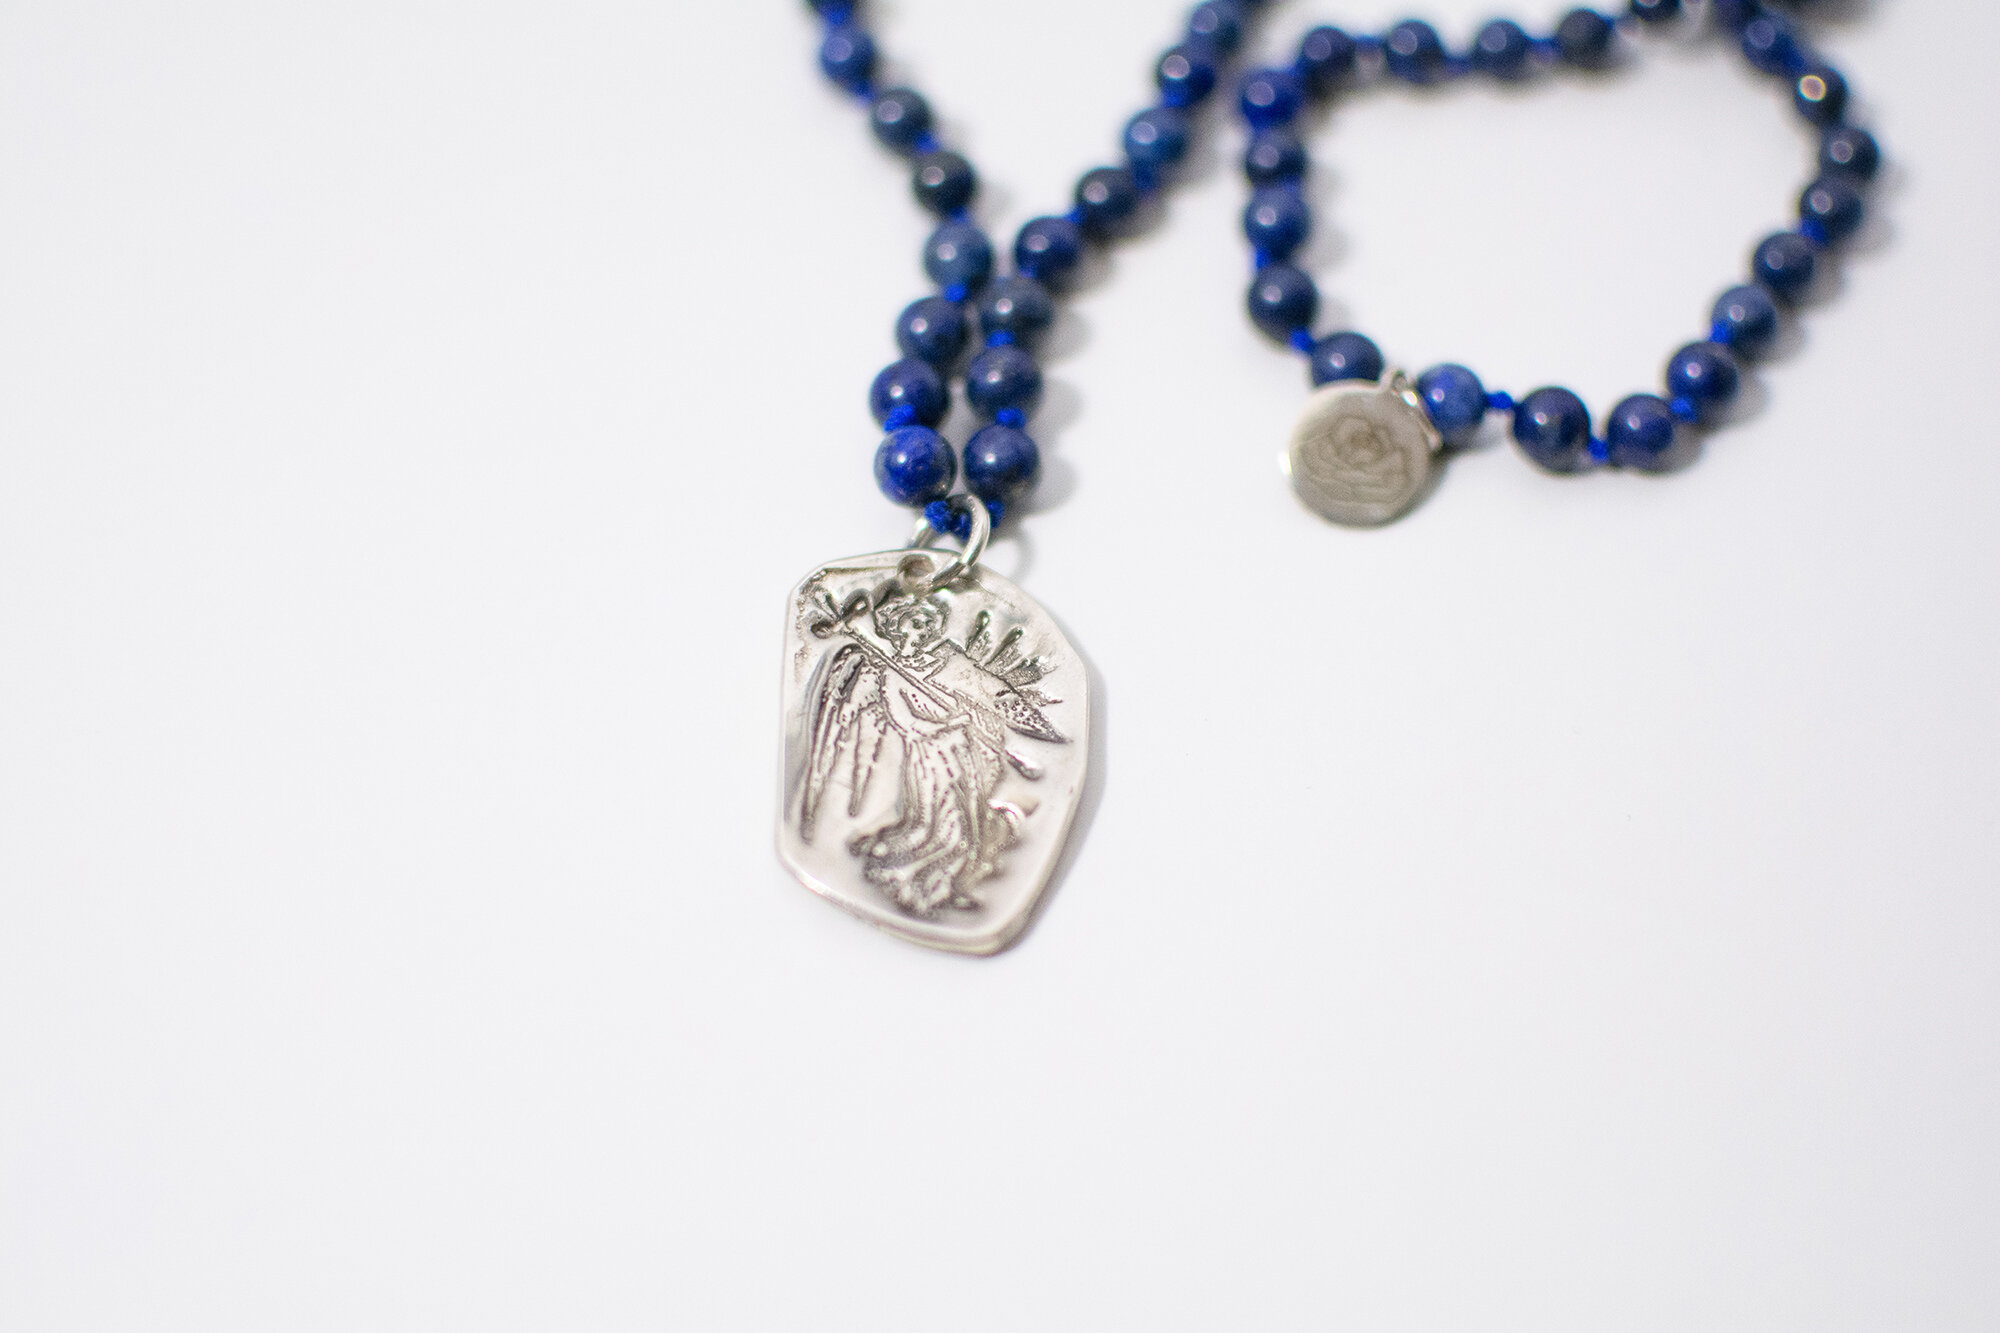 Angels frequent our collection! Here is Gabriel in an outstanding handmade silver charm adorning pure lapis.